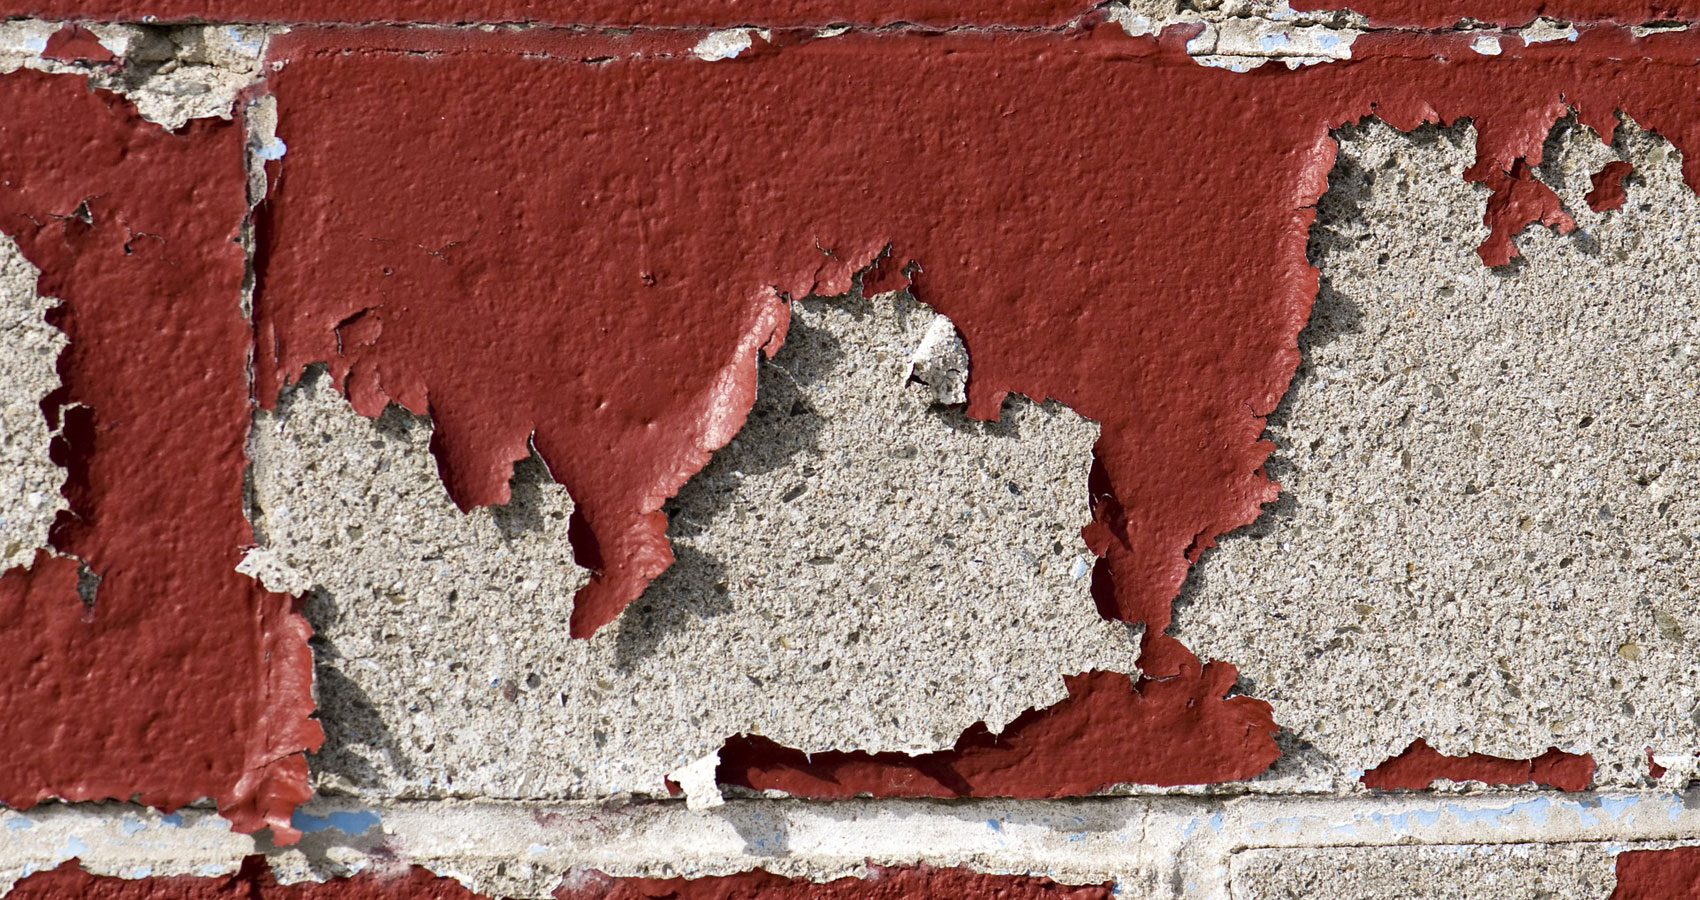 Peeling Paint written by Rachel Tremblay at Spillwords.com